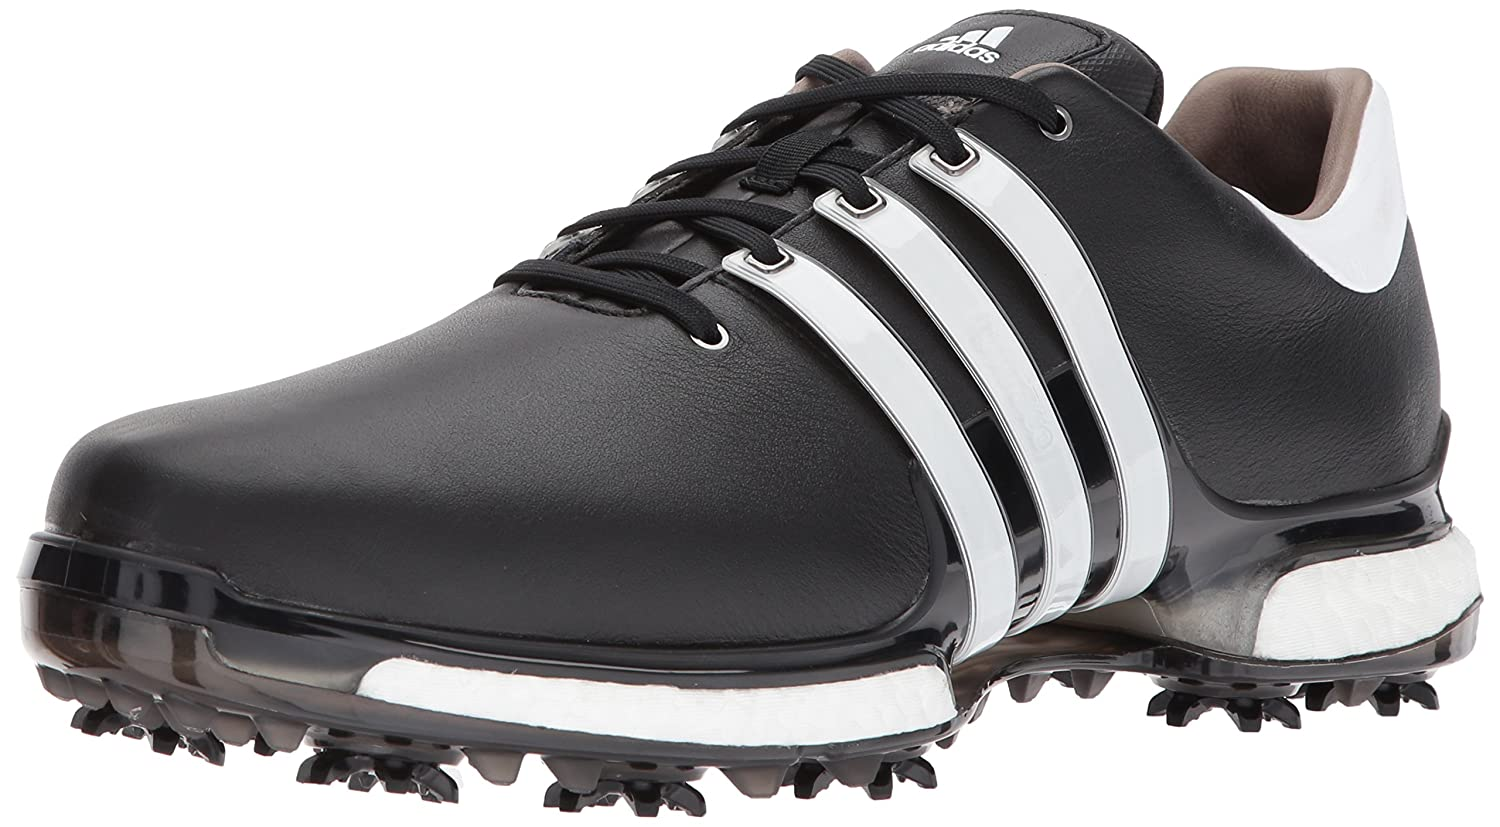 Adidas Golf 2019 Men's Tour 360 Boost 2.0 Waterproof Golf Shoes Wide Fit